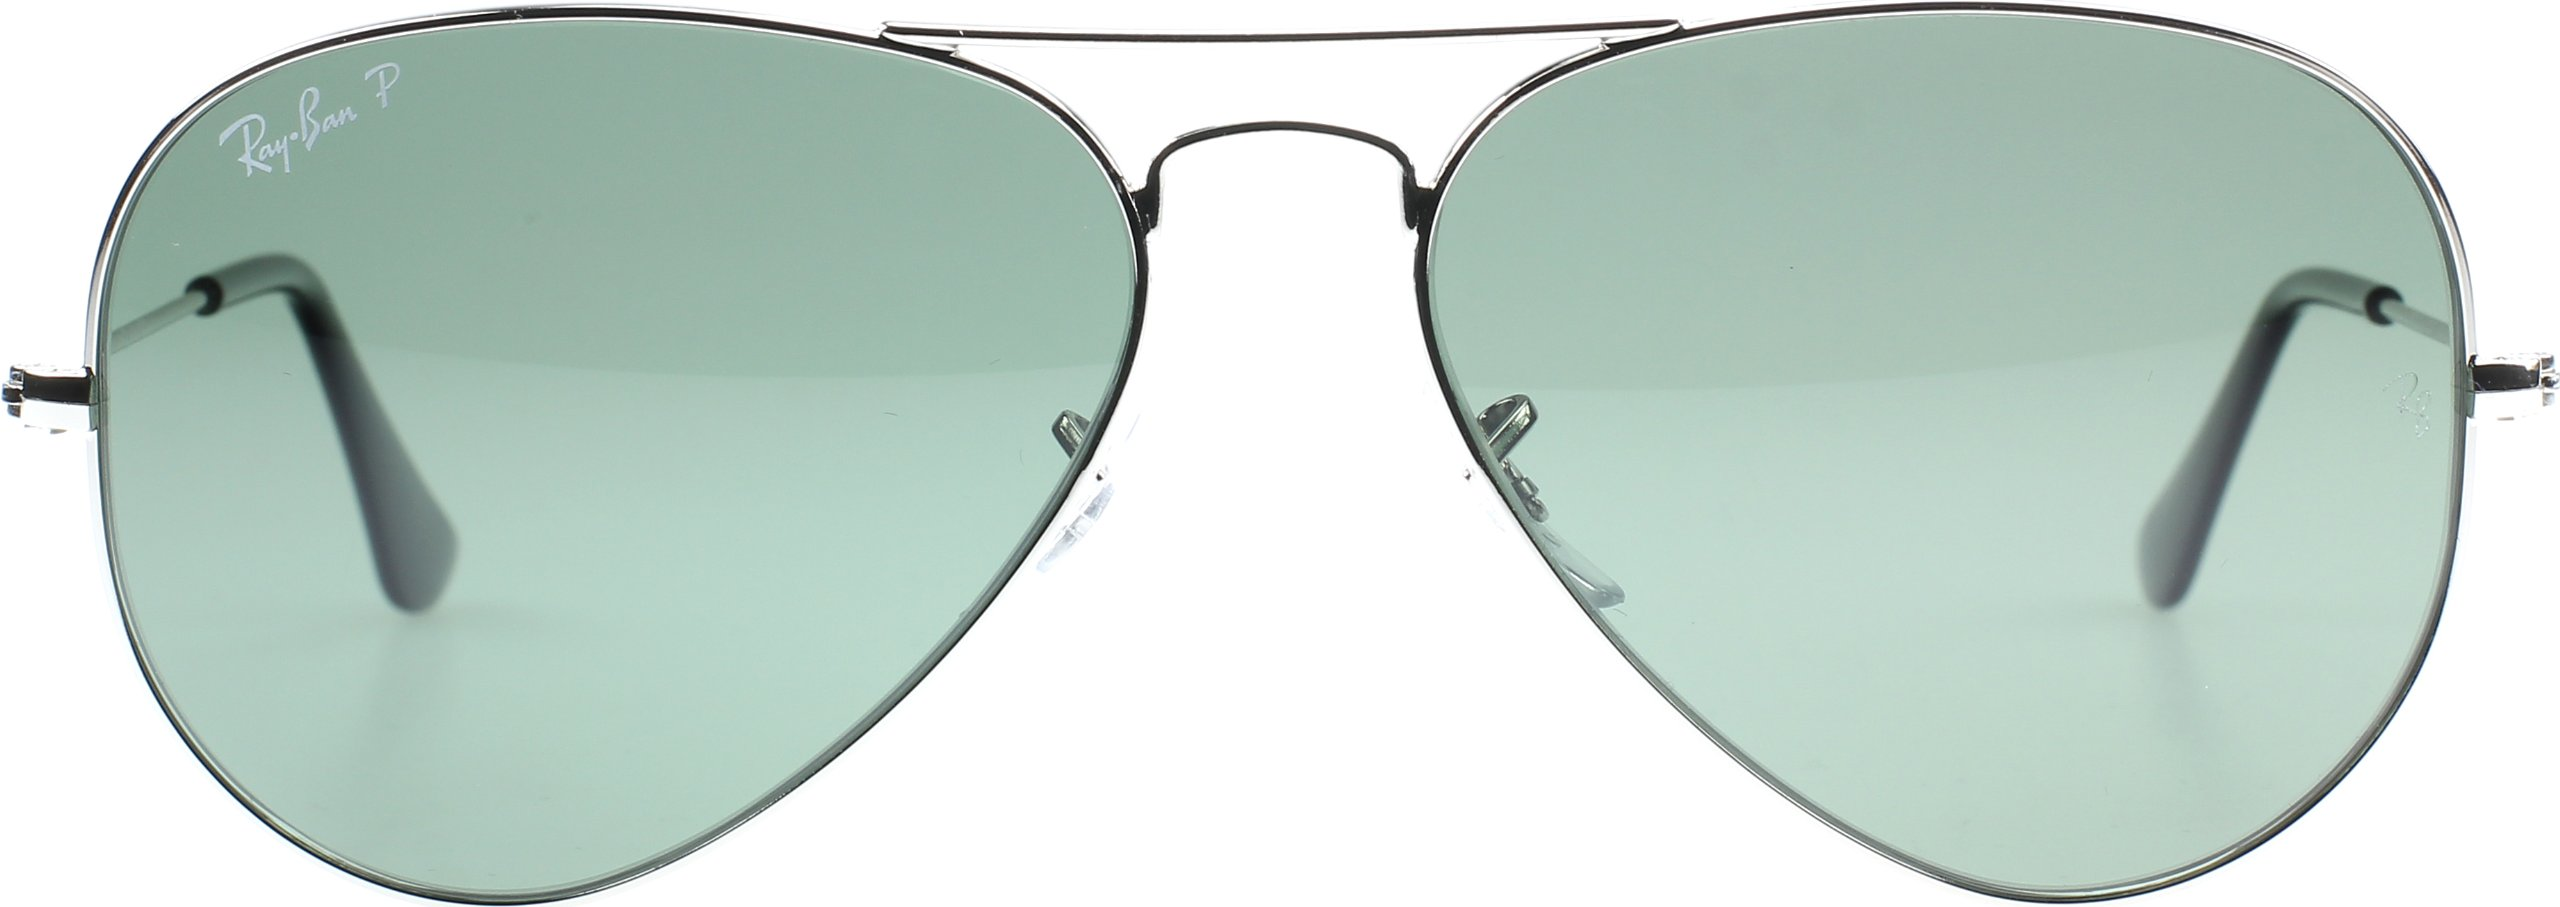 Ray-Ban Aviator Classic, Silver, 58 mm by RAY-BAN